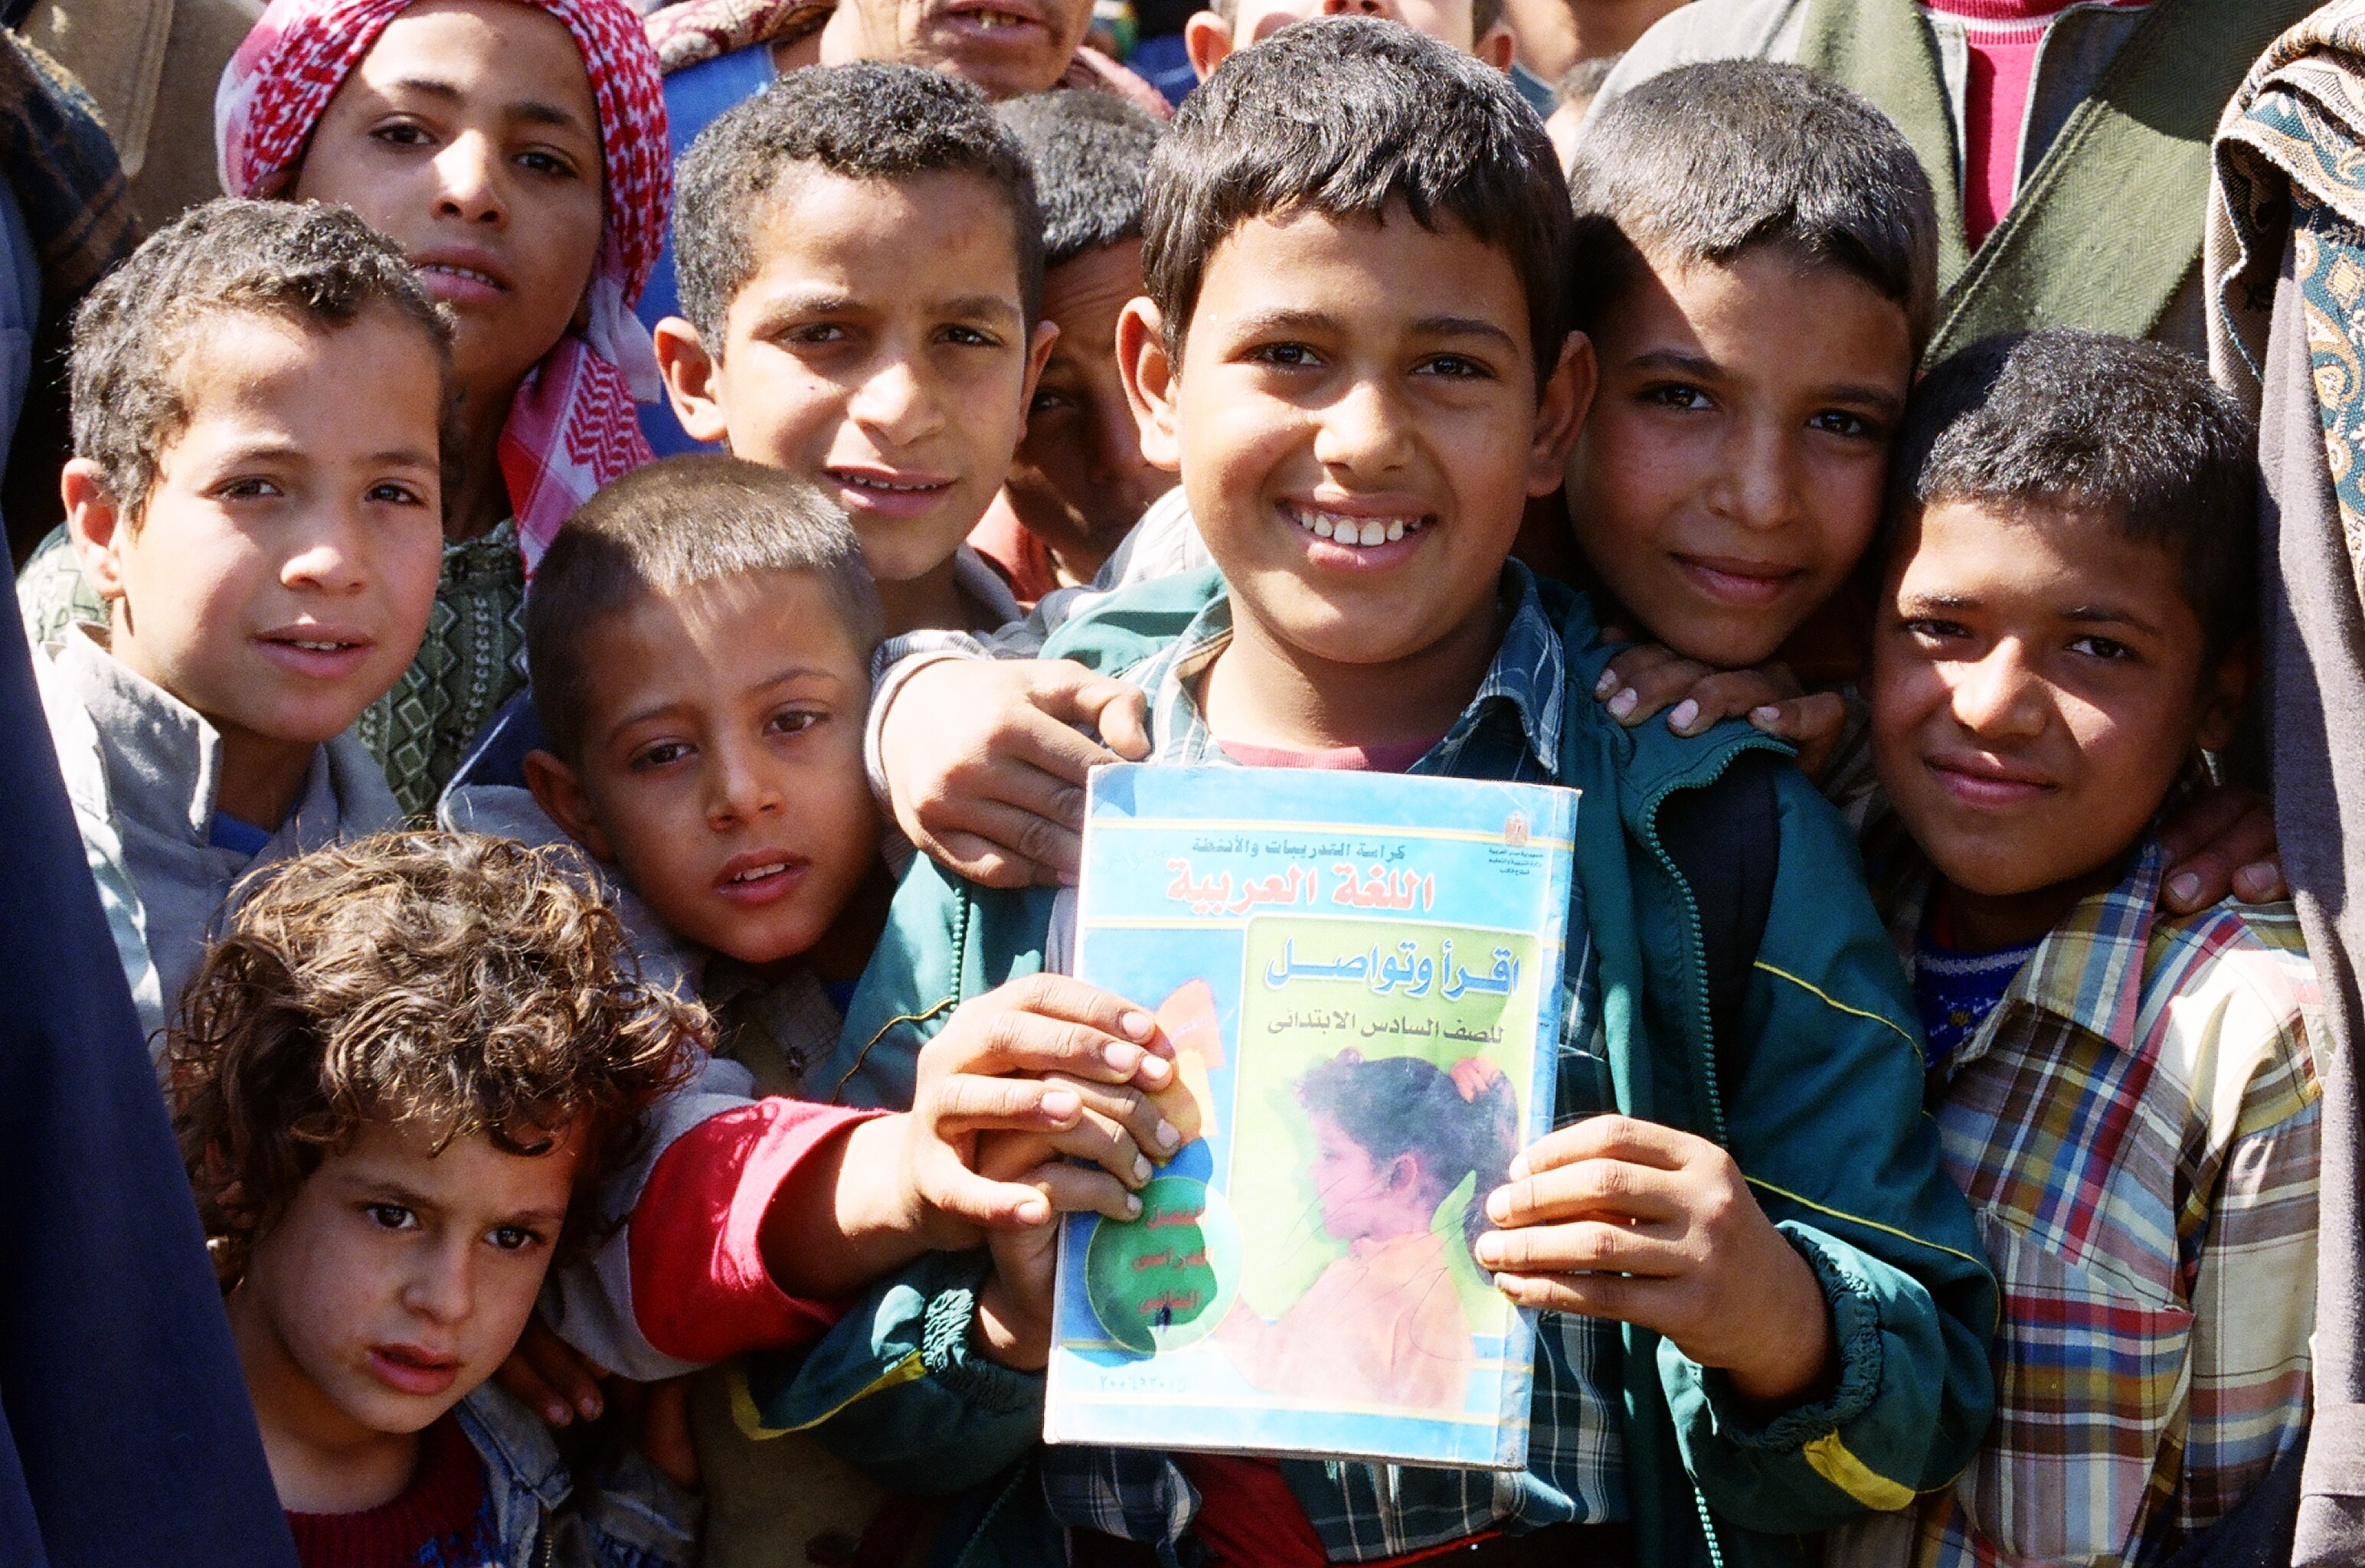 Image of group of boys in Egypt.